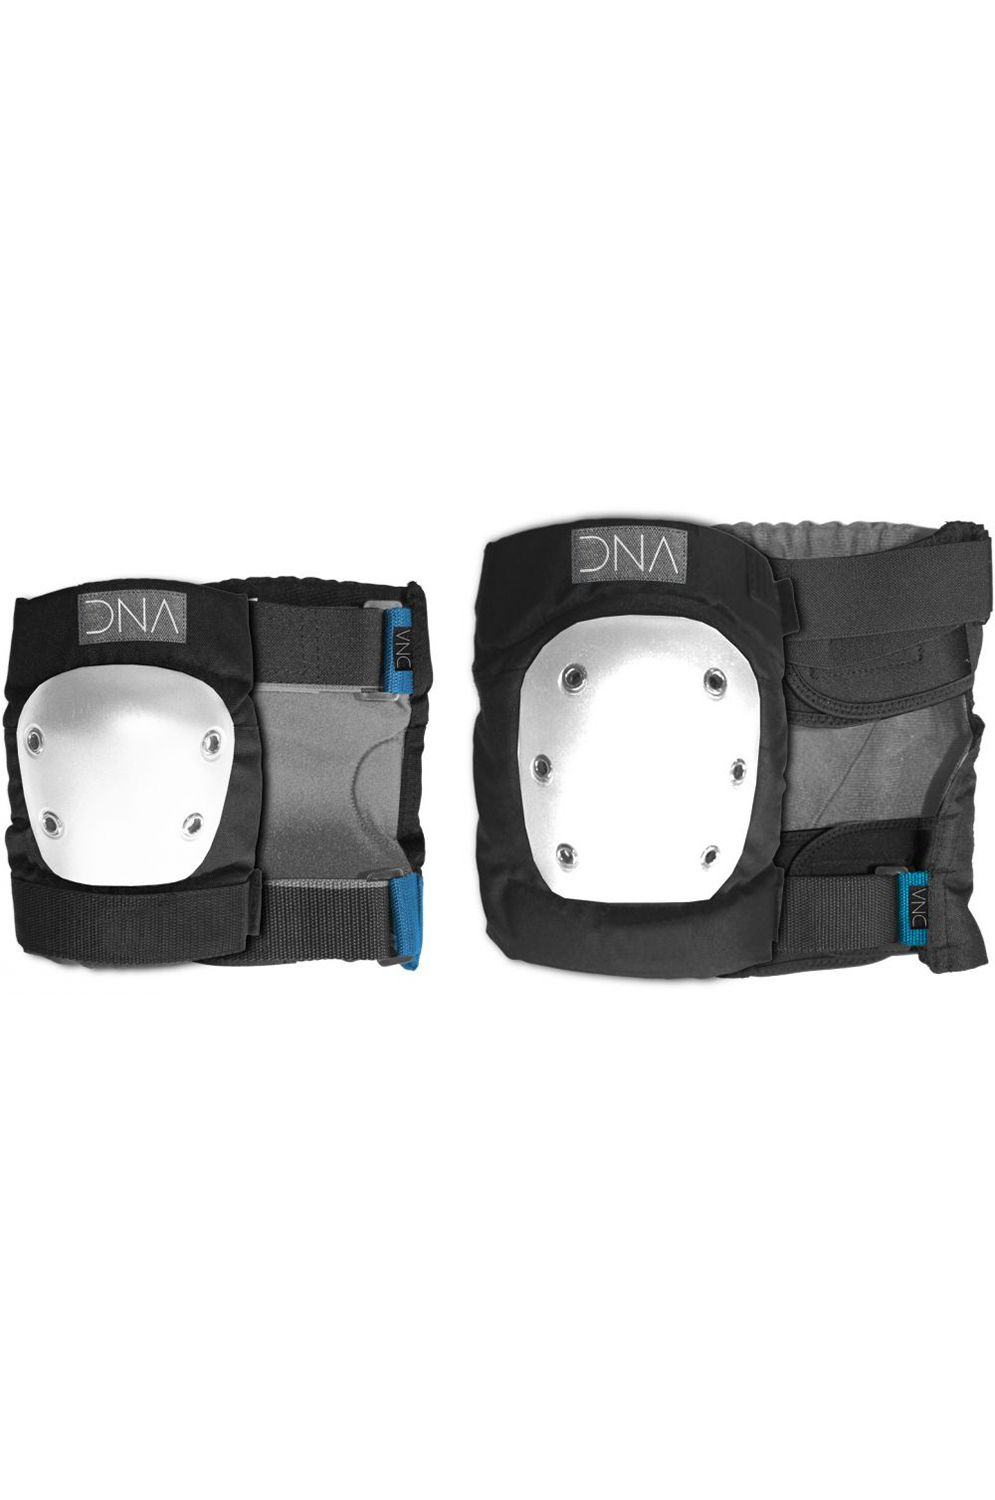 Dna Protection ORIGINAL KNEE & ELBOW PACK XS Black